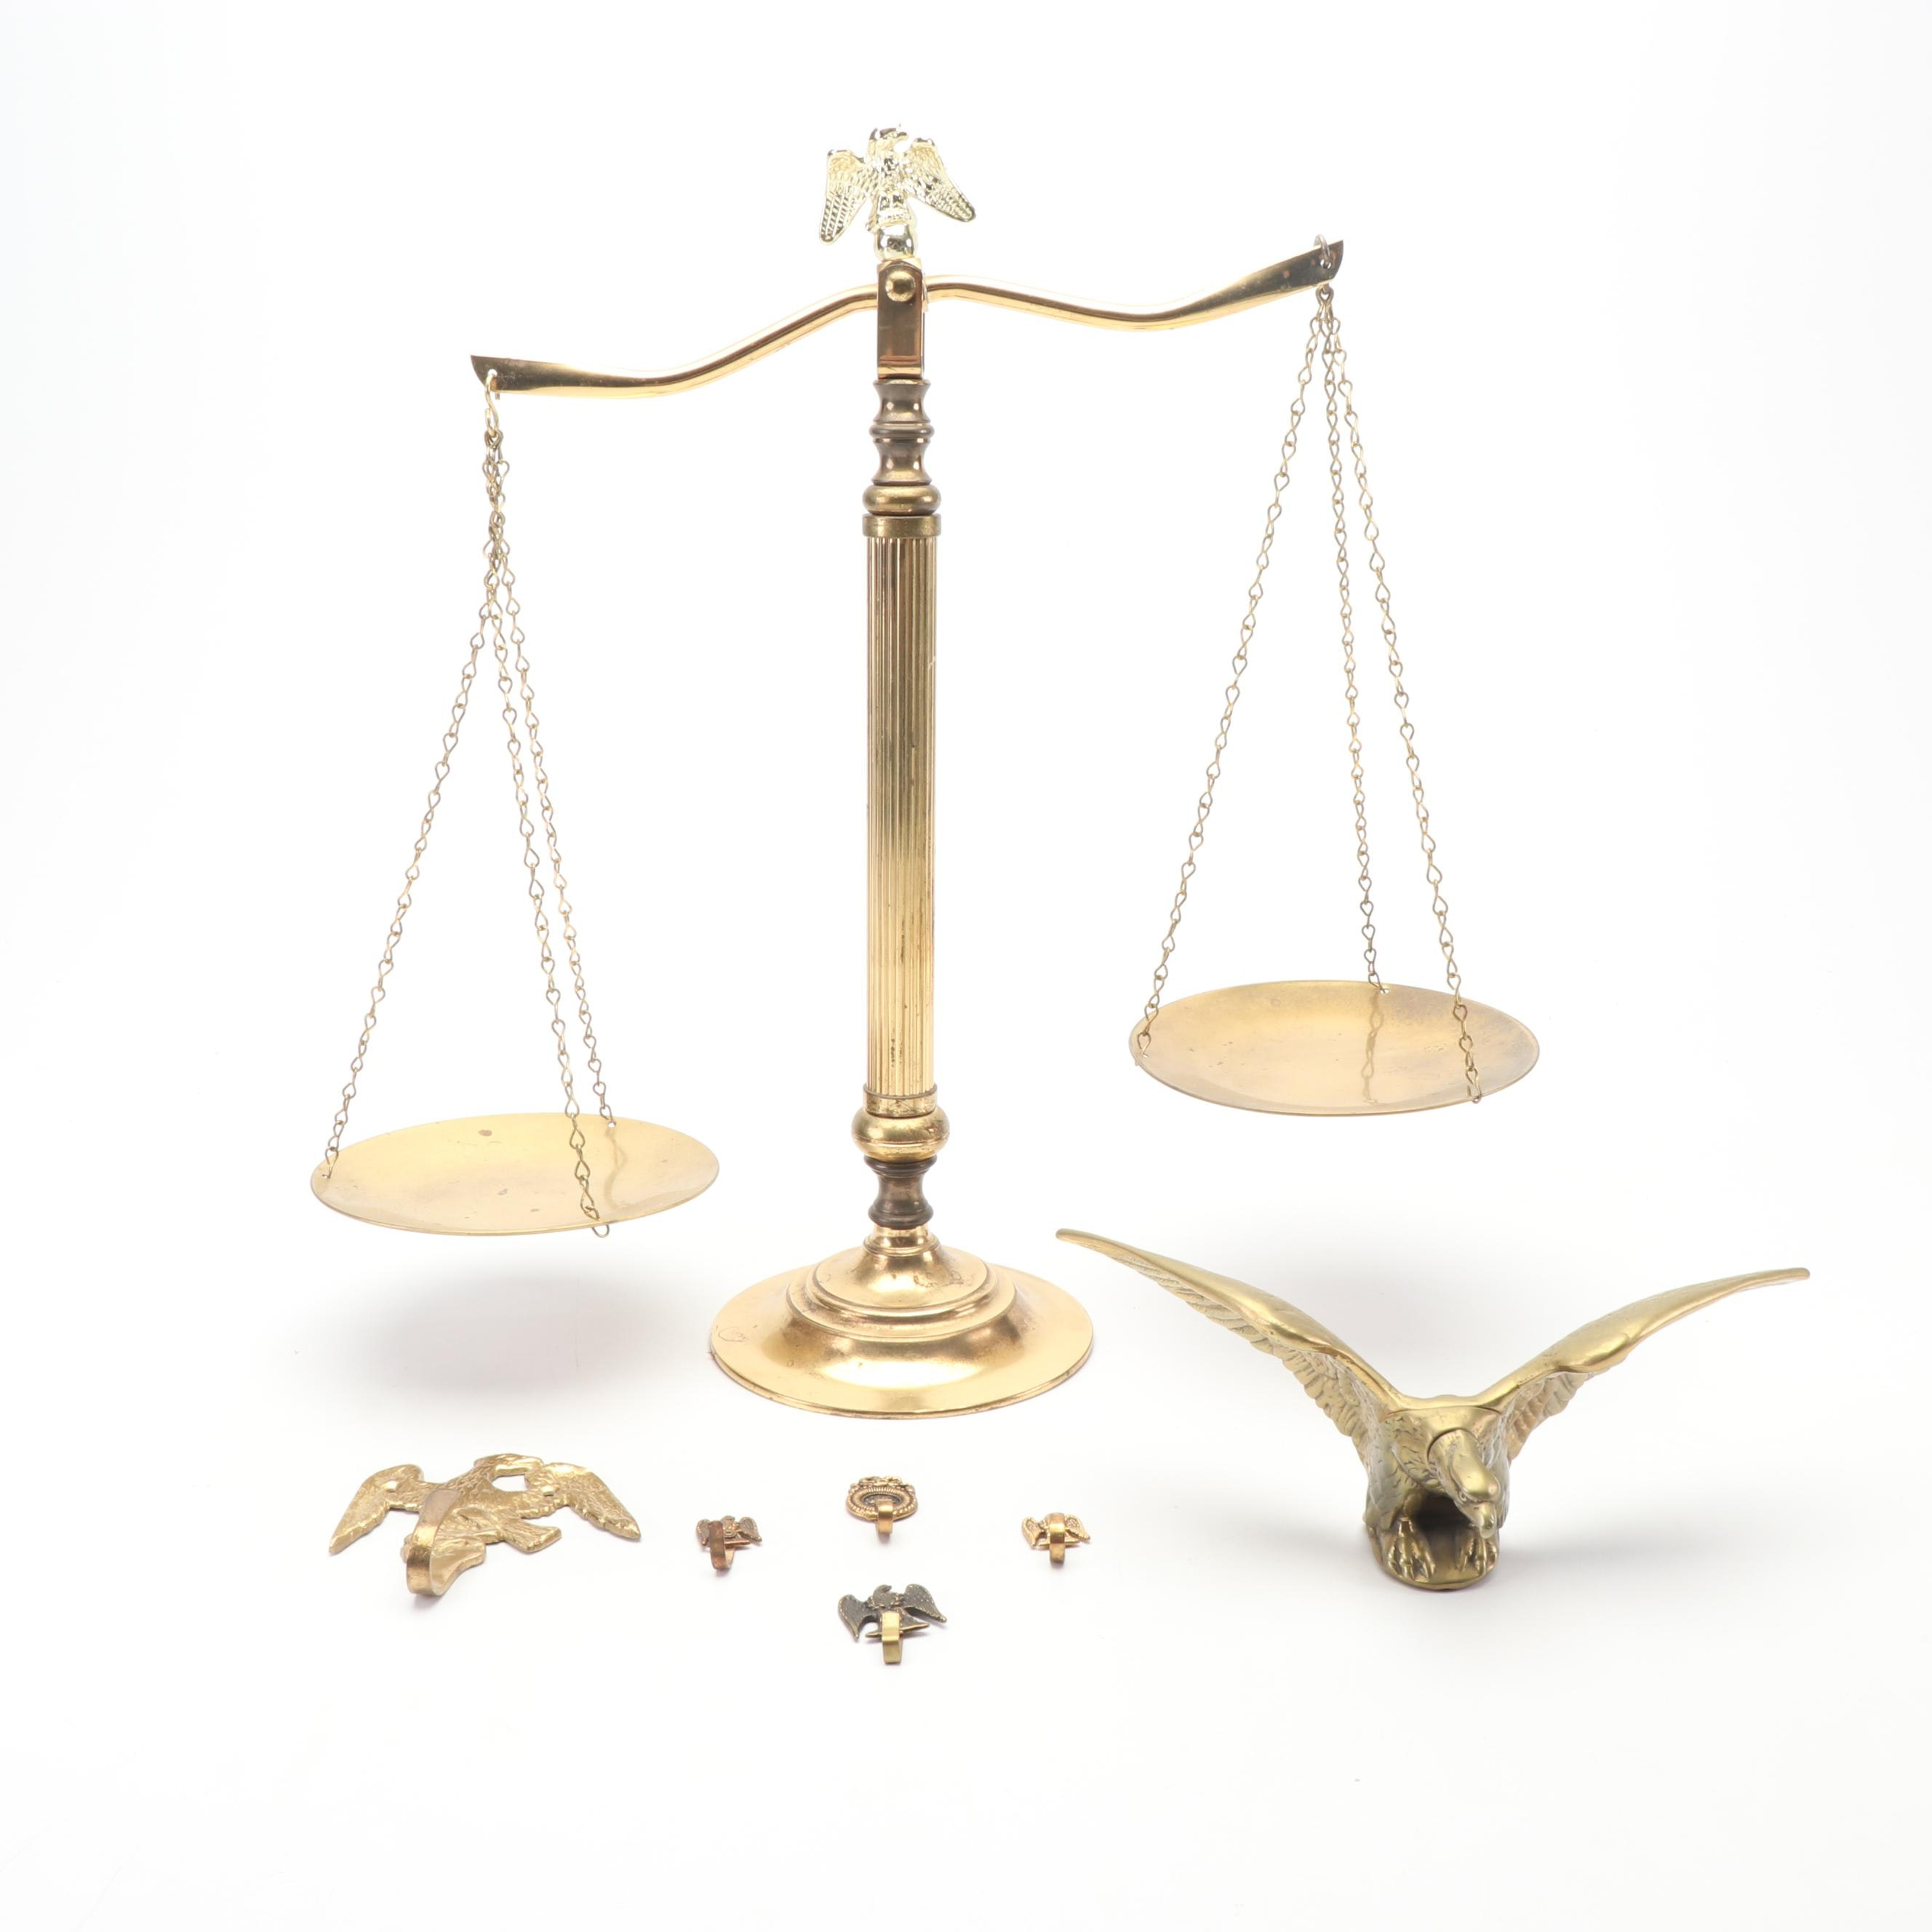 Brass Eagle Motif Décor, including a Balance Scale, Finial and Wall Hooks